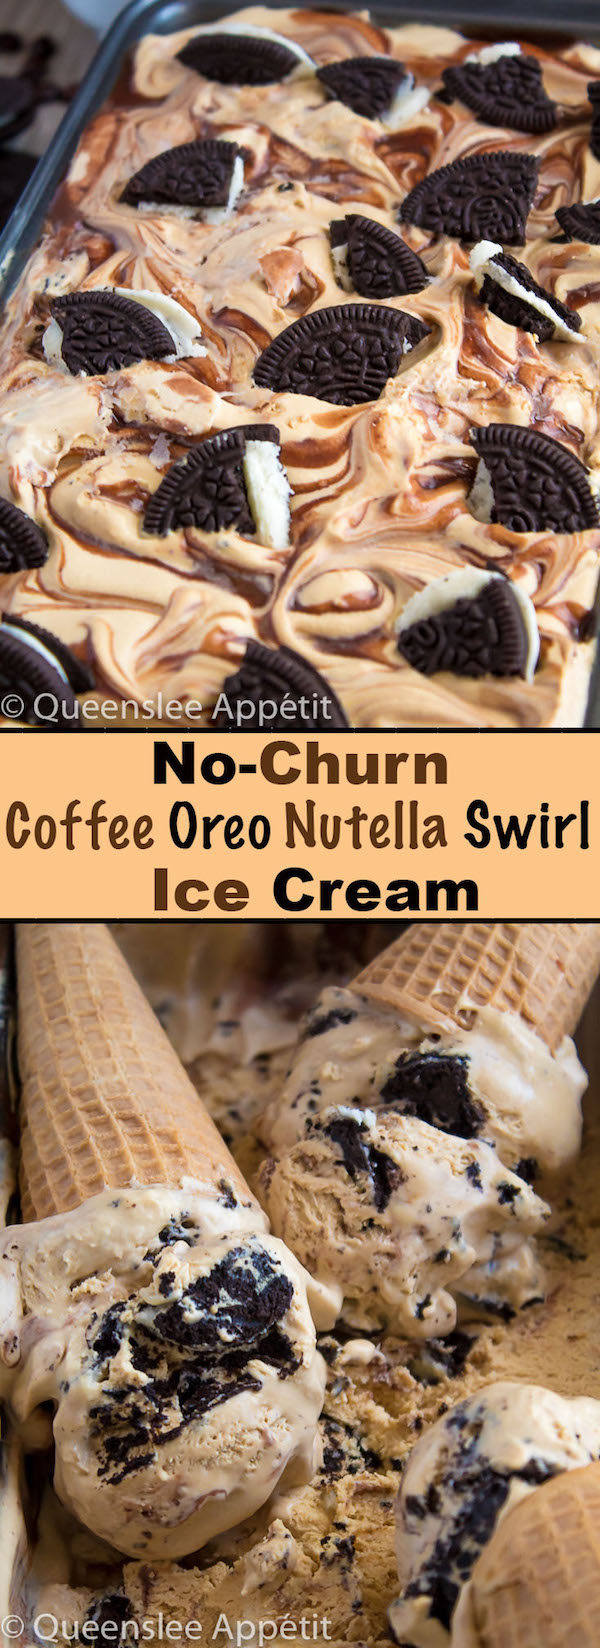 Packed with Oreos, swirled with Nutella ganache and full of rich and bold coffee flavour. This creamy Coffee Oreo Nutella Swirl Ice Cream is super easy to make and doesn't require any eggs, cooking, or an ice cream maker!